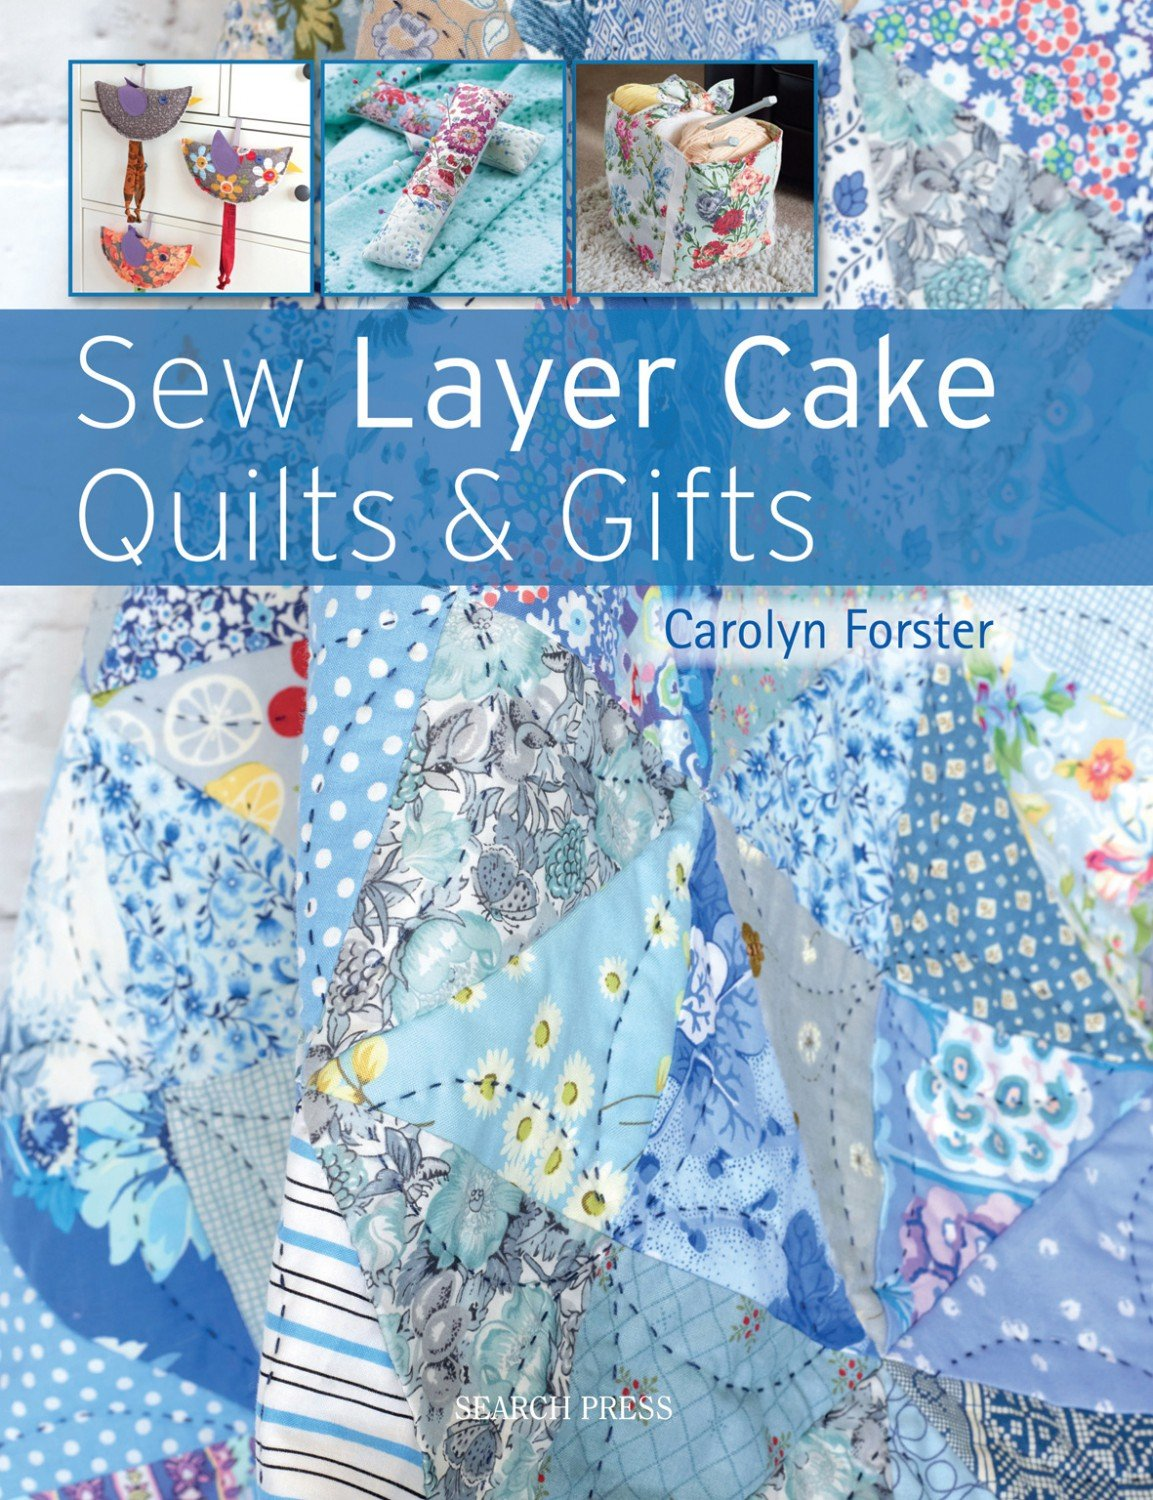 Sew Layer Cake Quilts & Gifts by Carolyn Forster SP1377